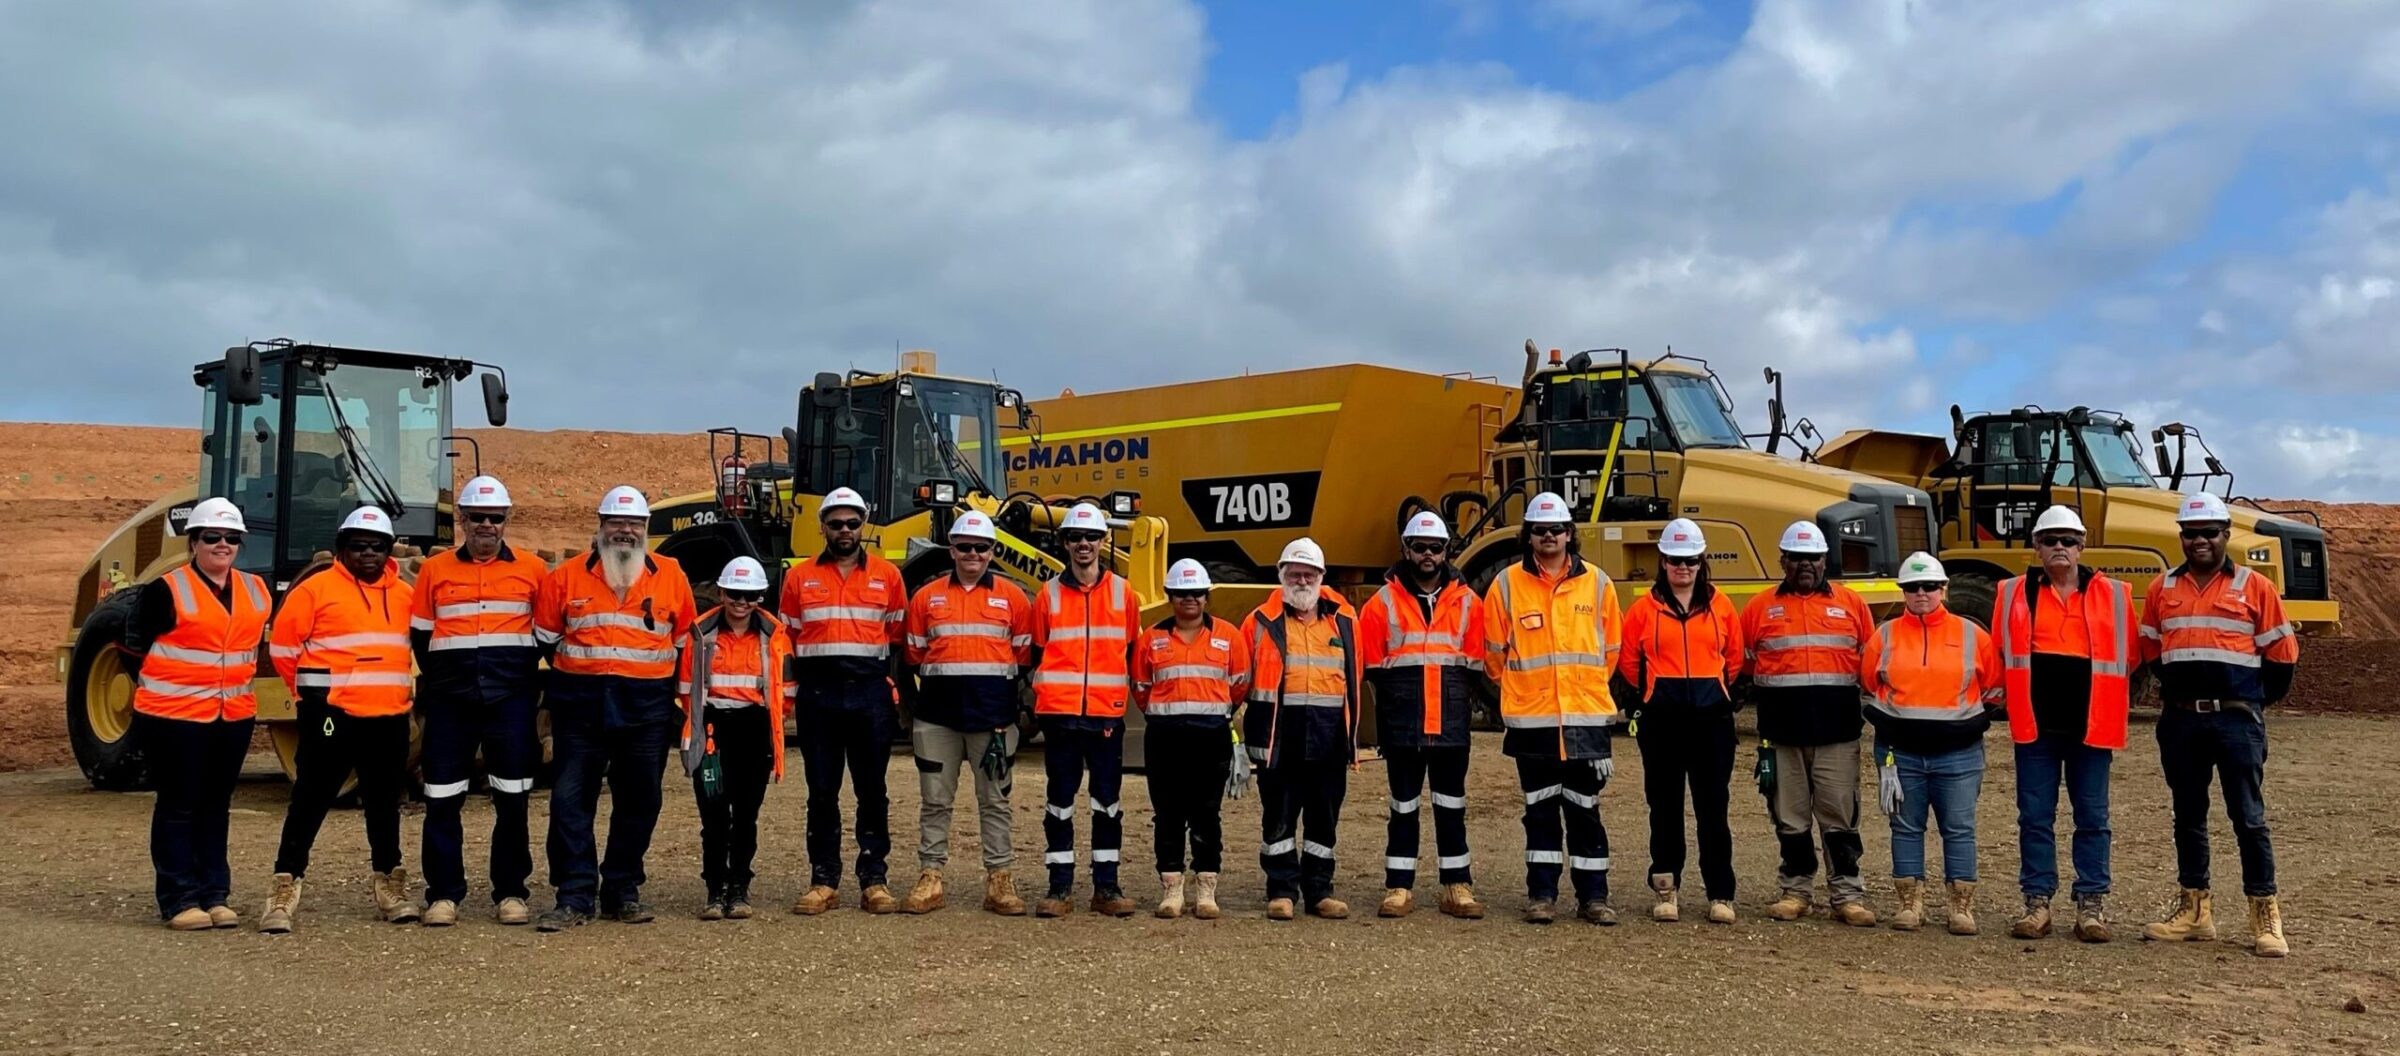 Road Upgrade Leads to Training Regional Long-Term Unemployed